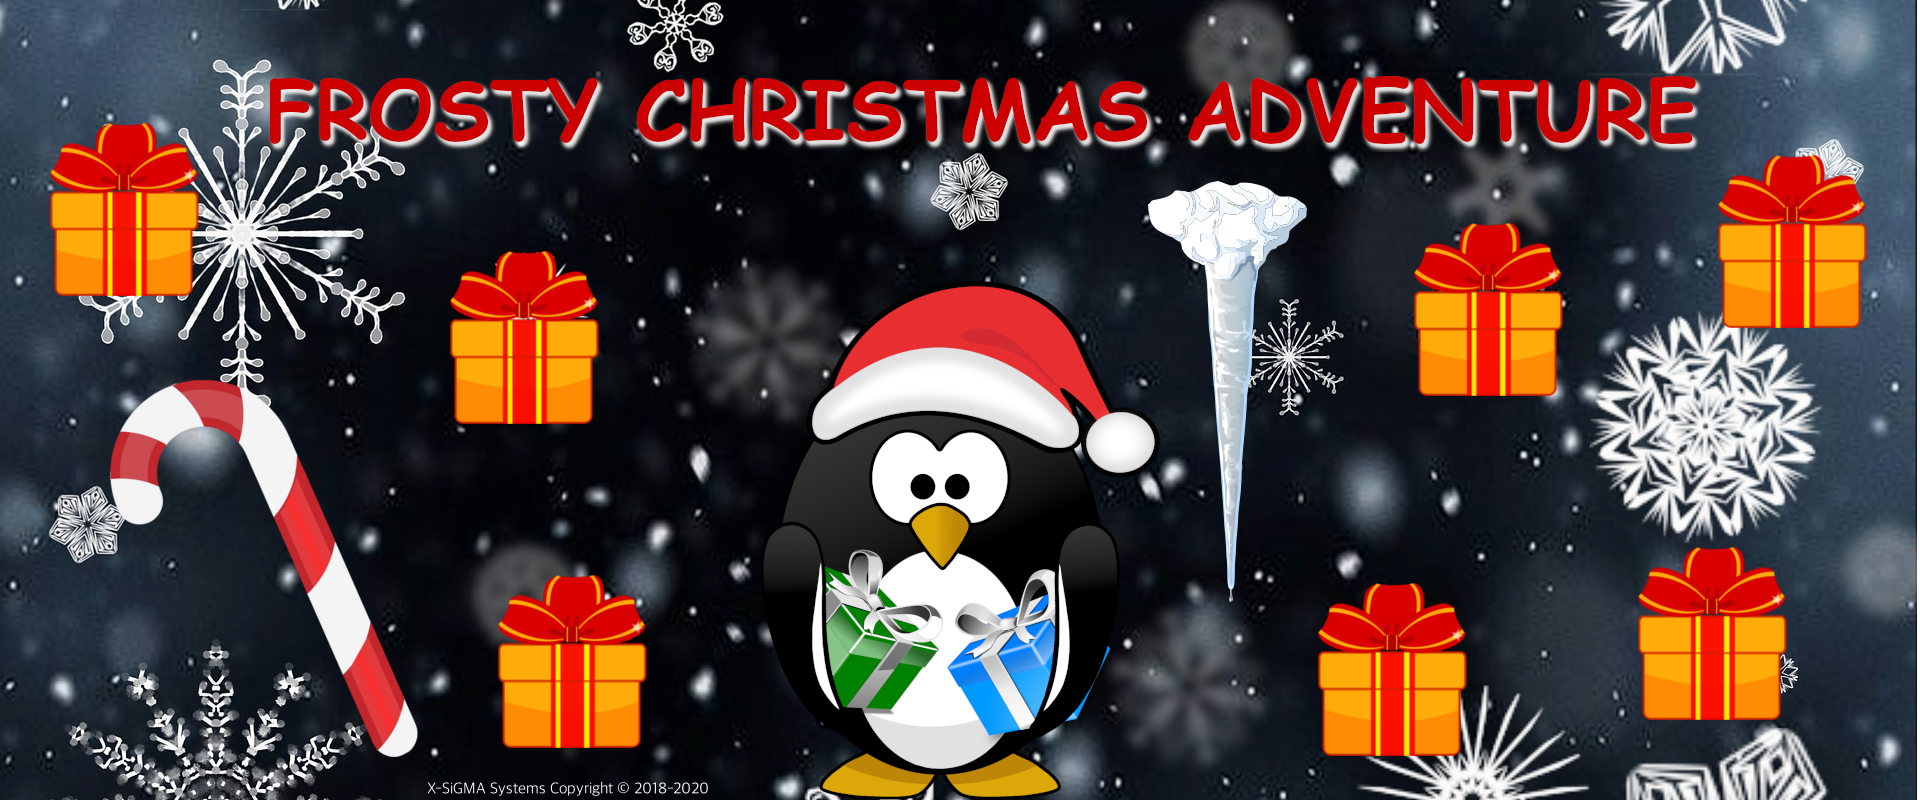 Frosty Christmas Adventure